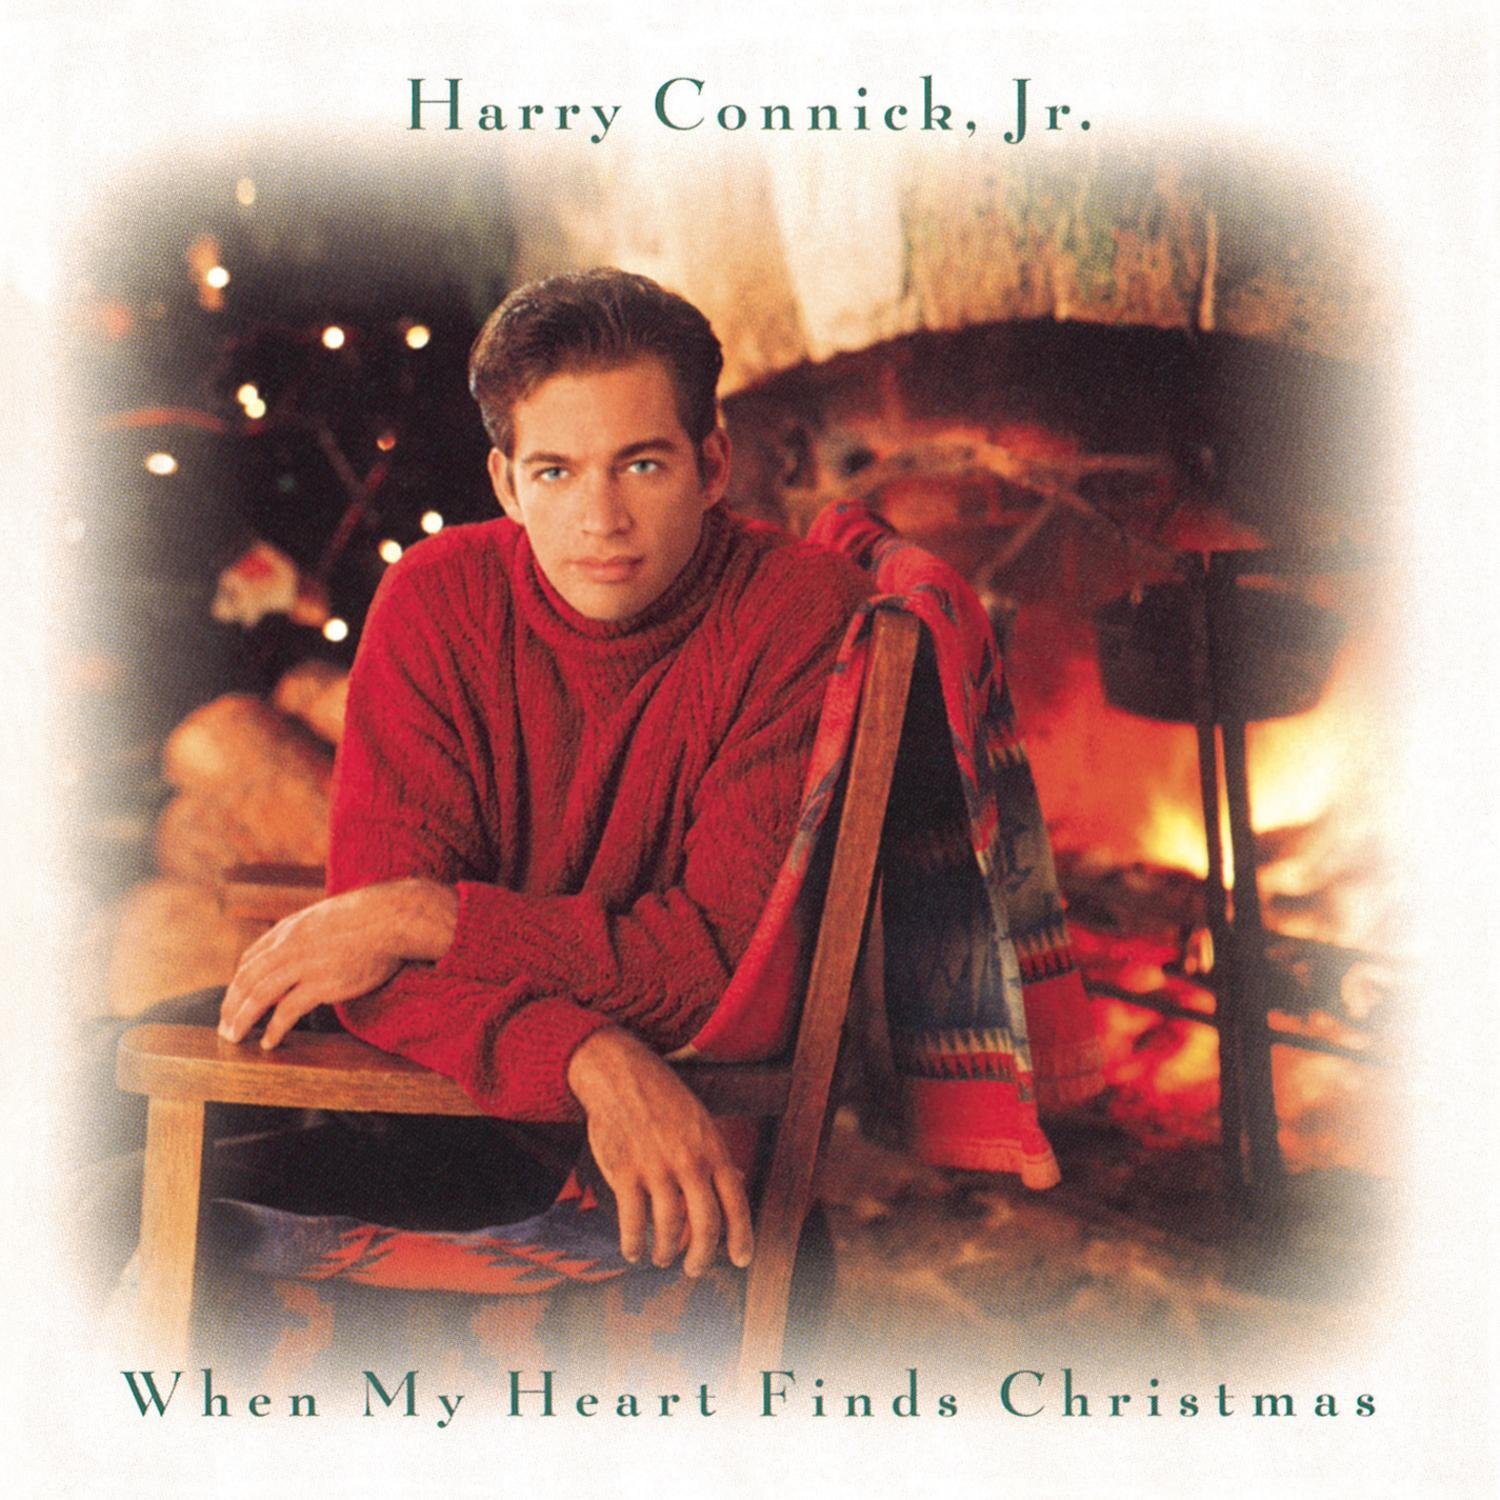 harry connick jr when my heart finds christmas amazoncom music